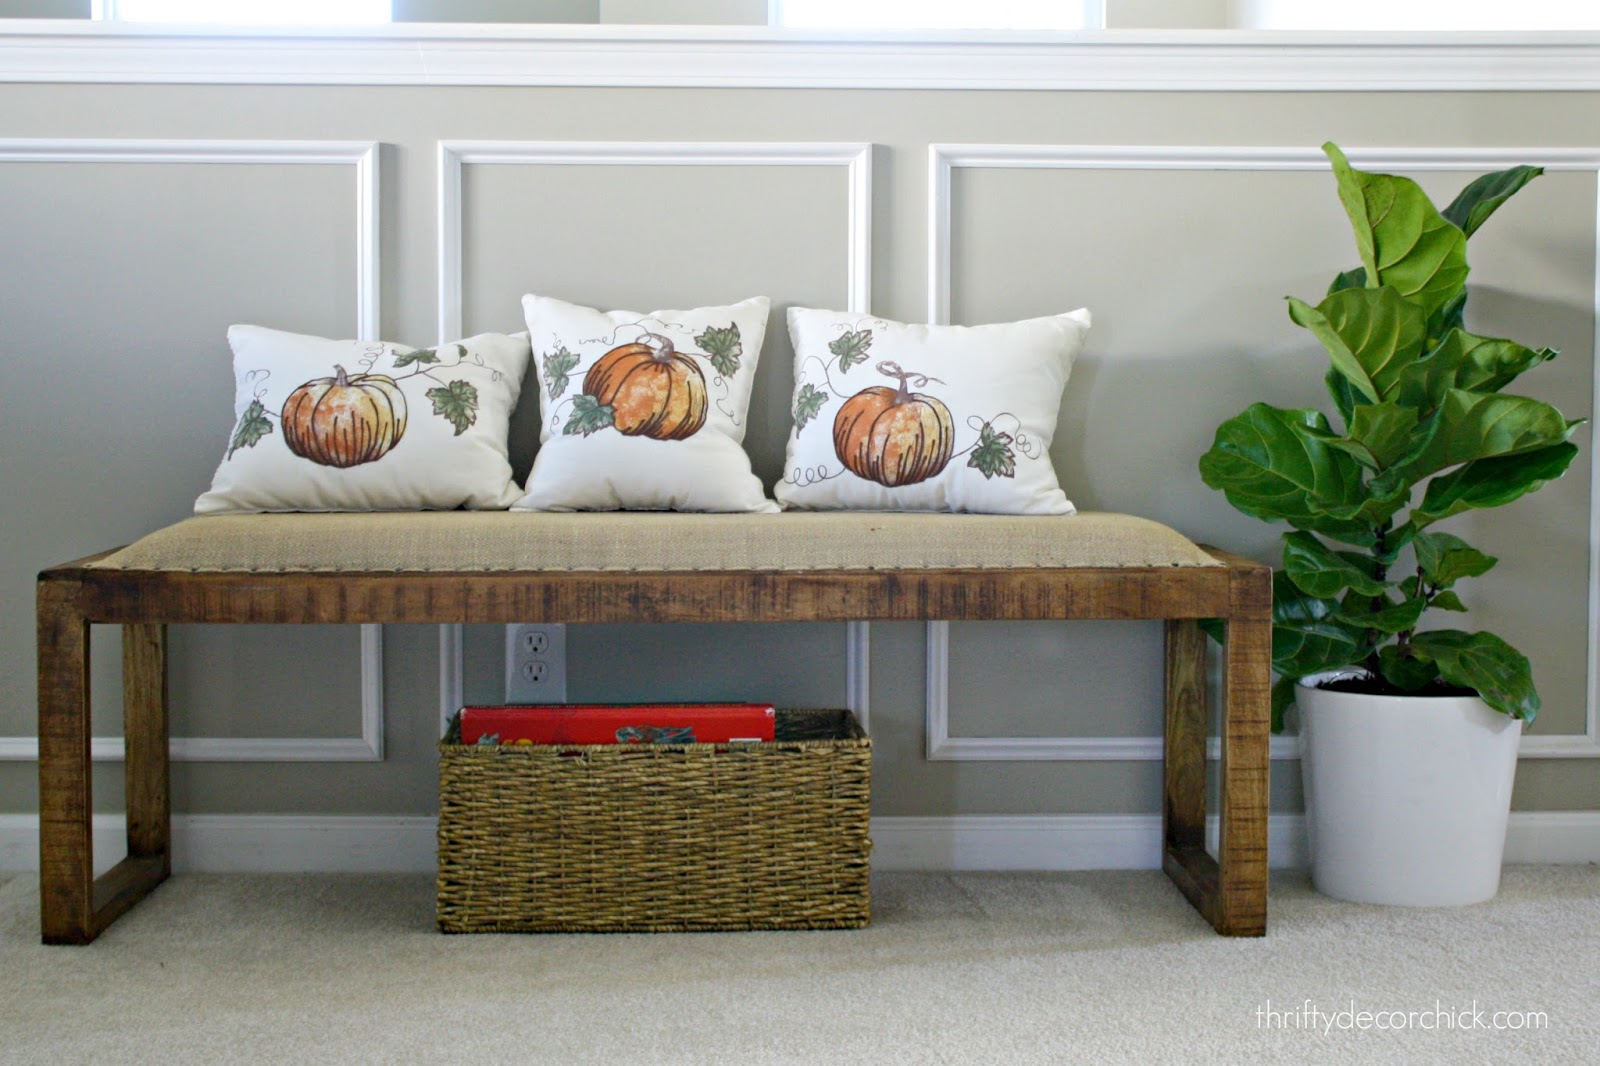 pillows made from a table runner